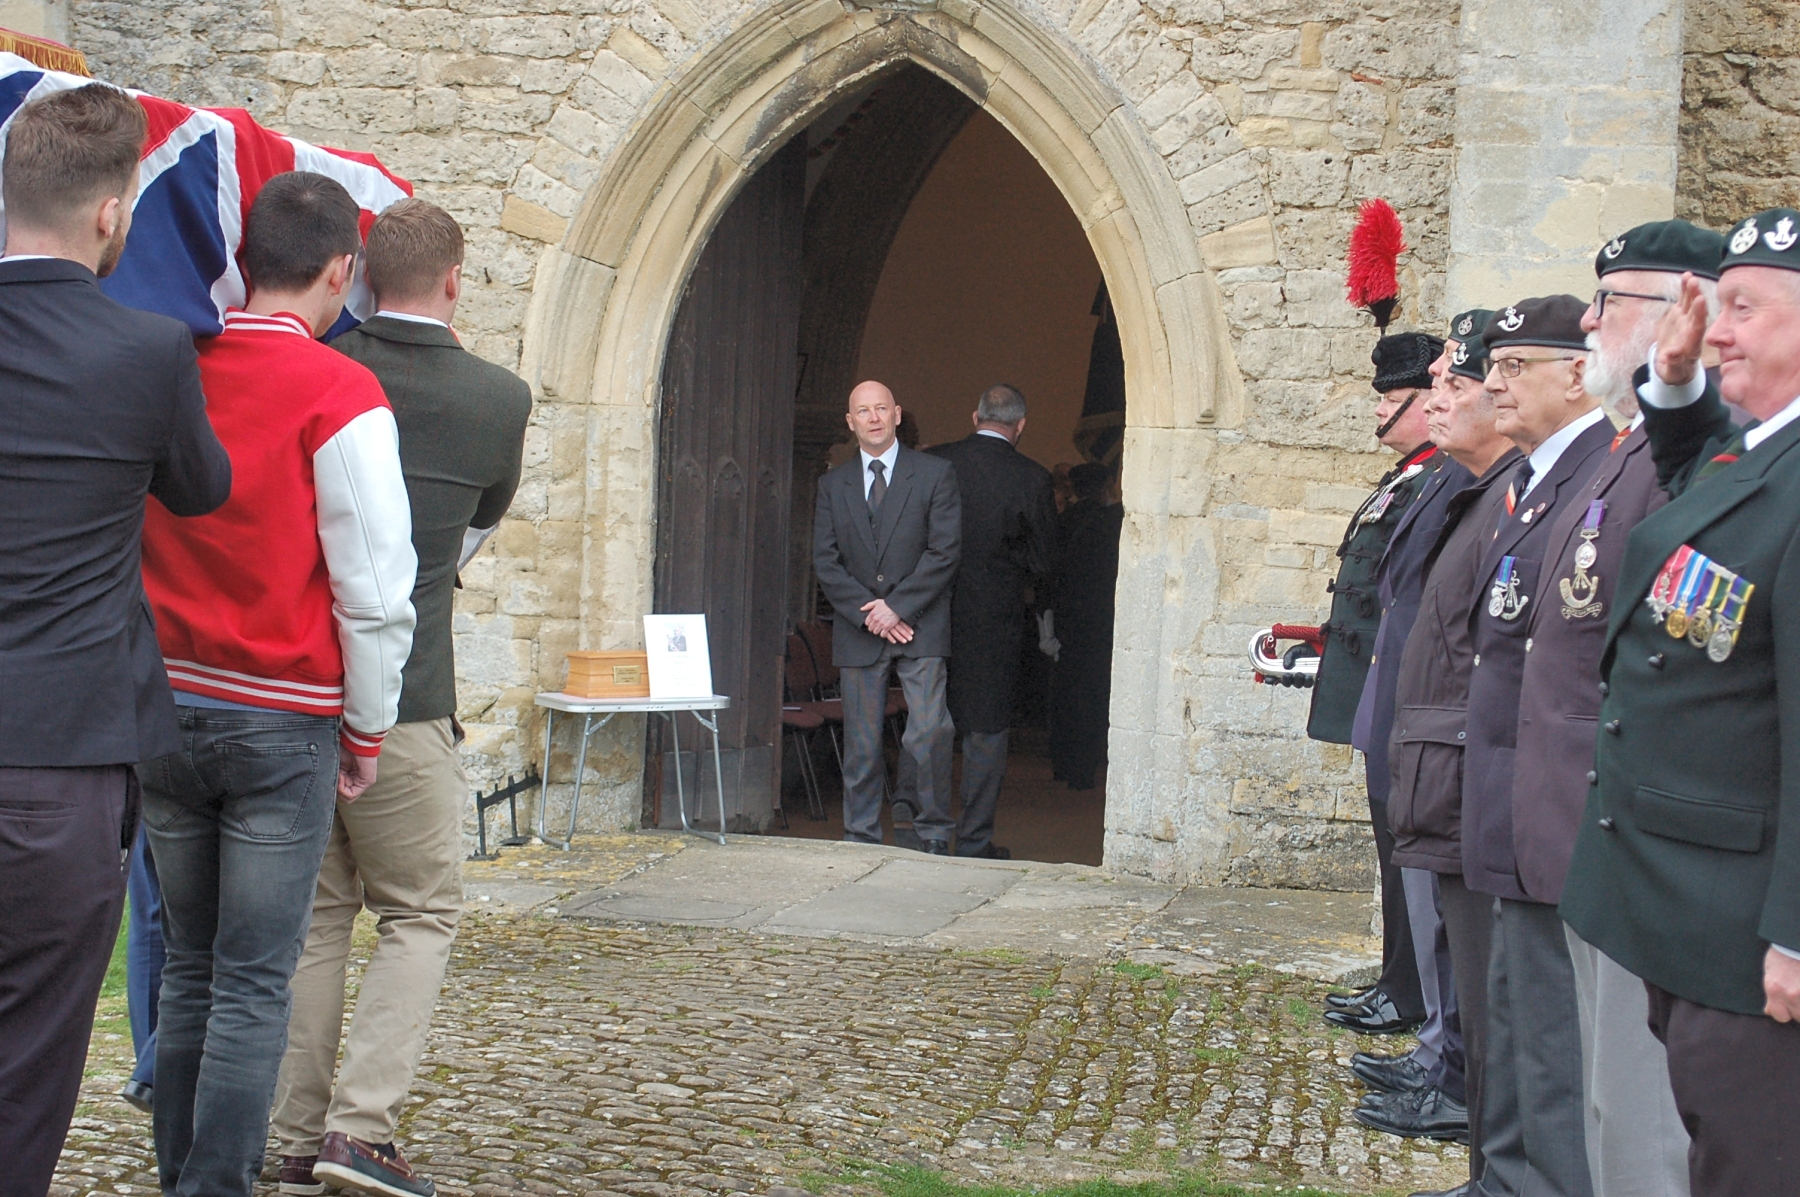 Veterans form a Guard of Honour at the funeral of D-Day hero Vernon Jones. Pic supplied by Terry Roper